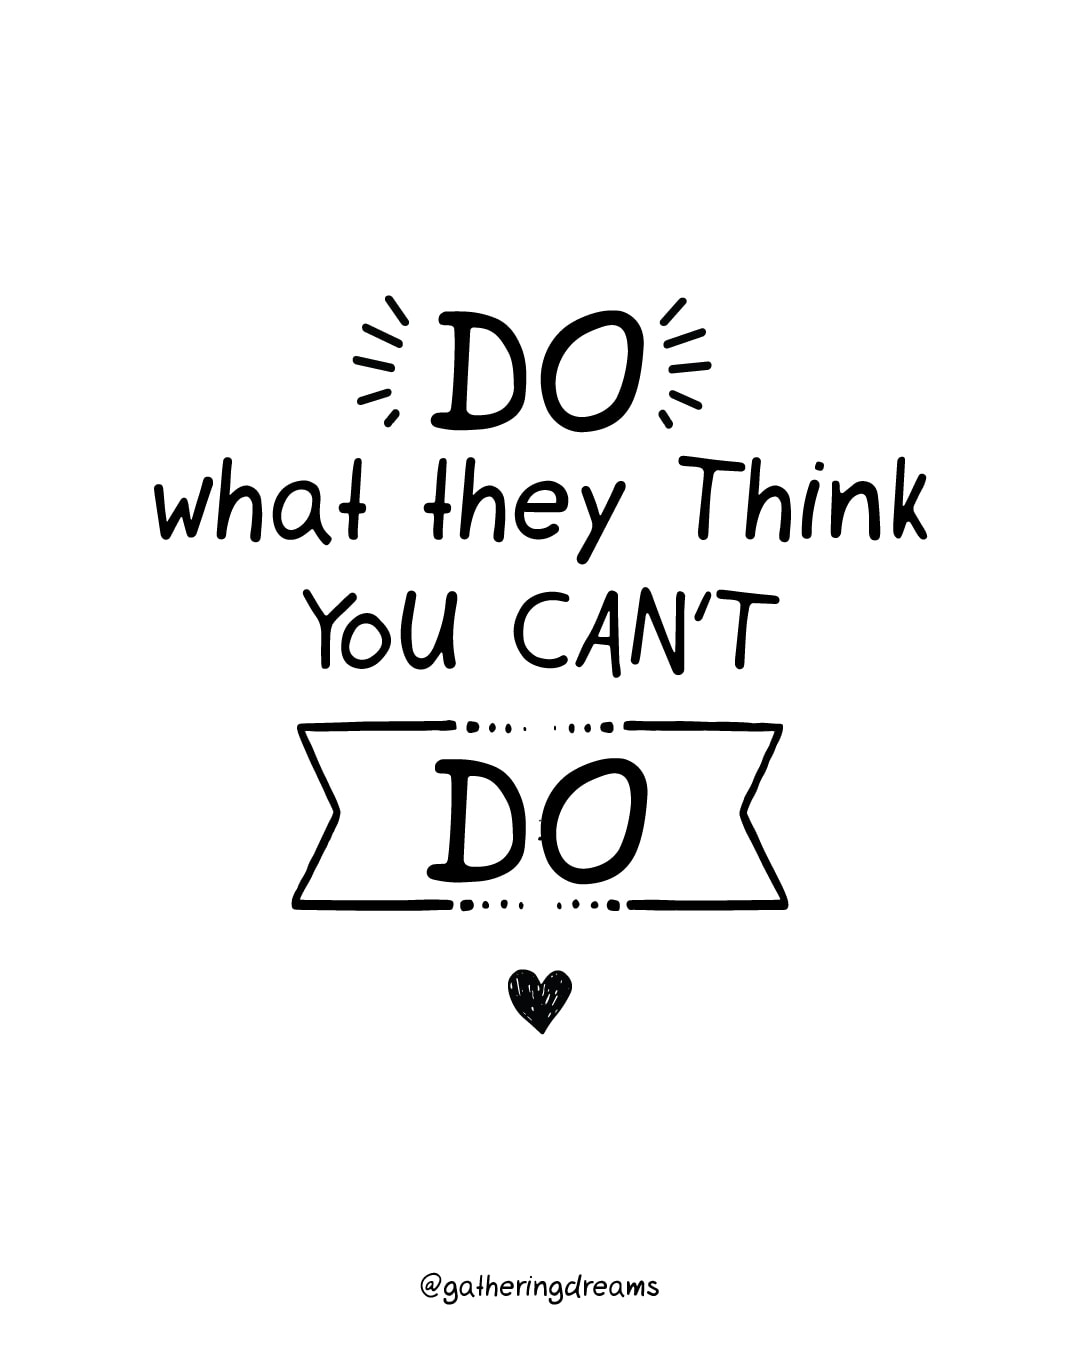 """Do what they think you can't do."" Duke Fergerson - The best dream quotes ever!"